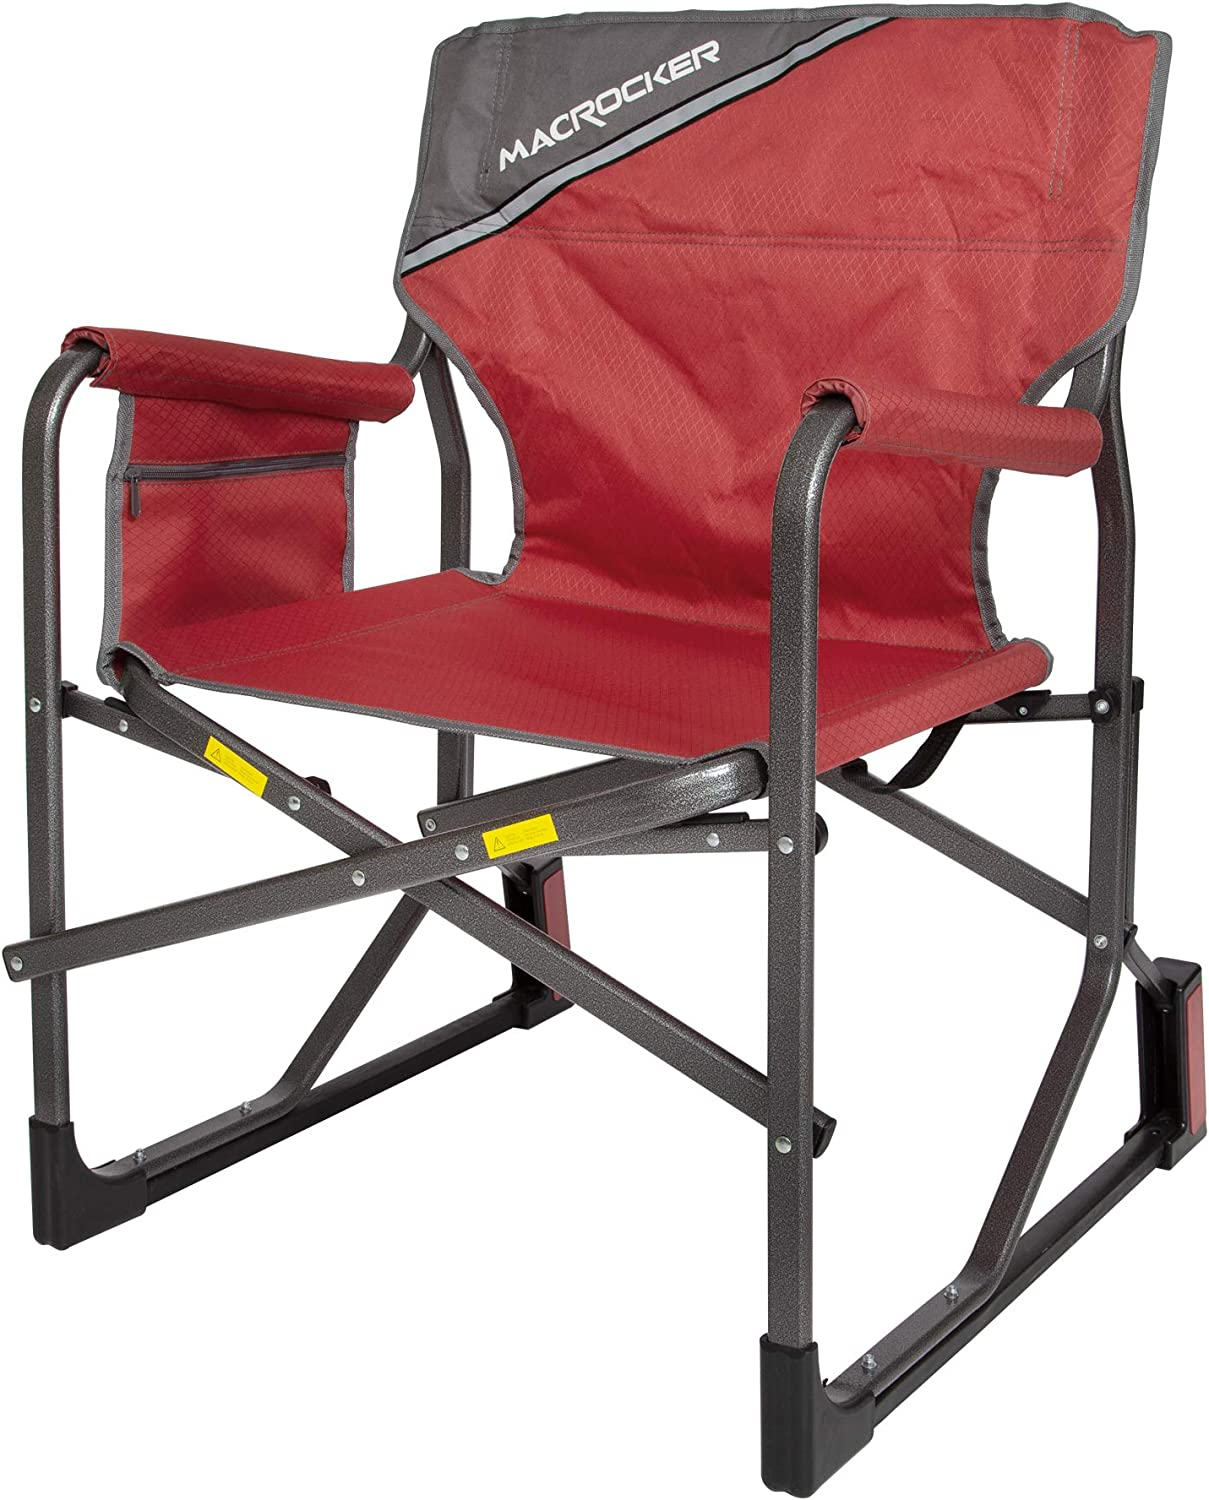 Mac Sports MacRocker Foldable Outdoor Rocking Chair - Red